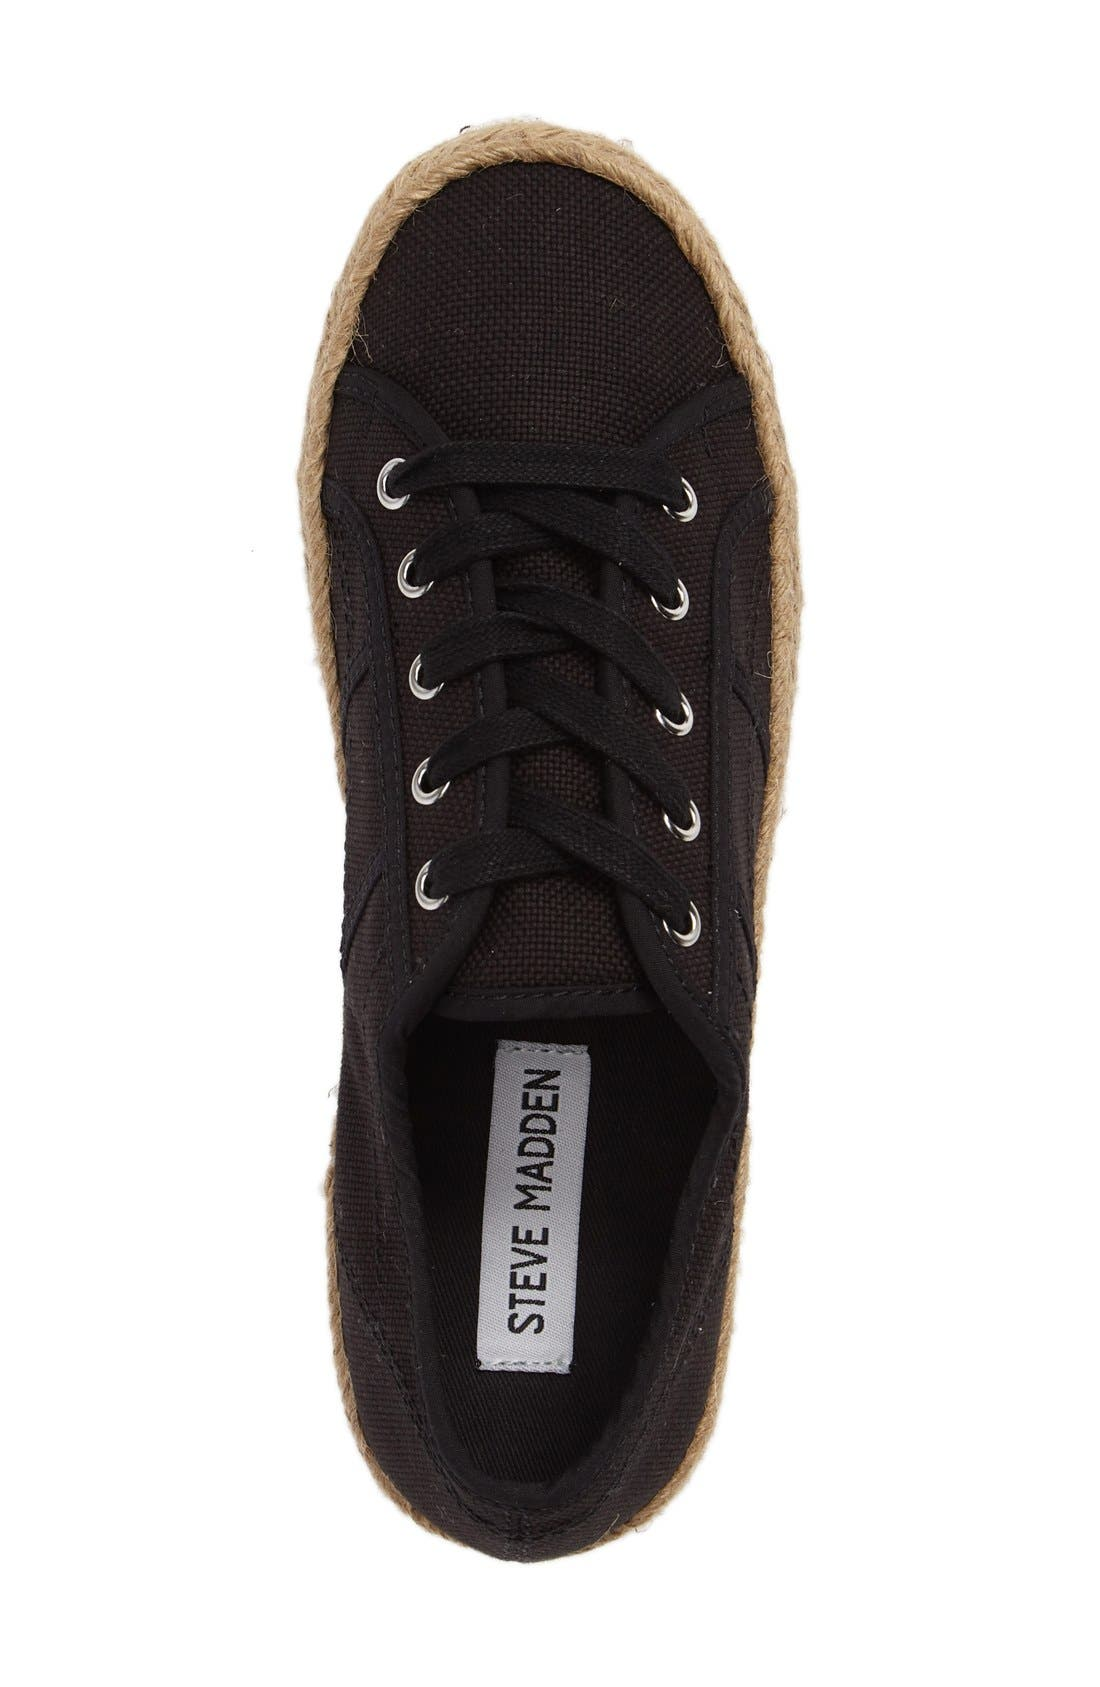 Hampton Platform Sneaker,                             Alternate thumbnail 7, color,                             007